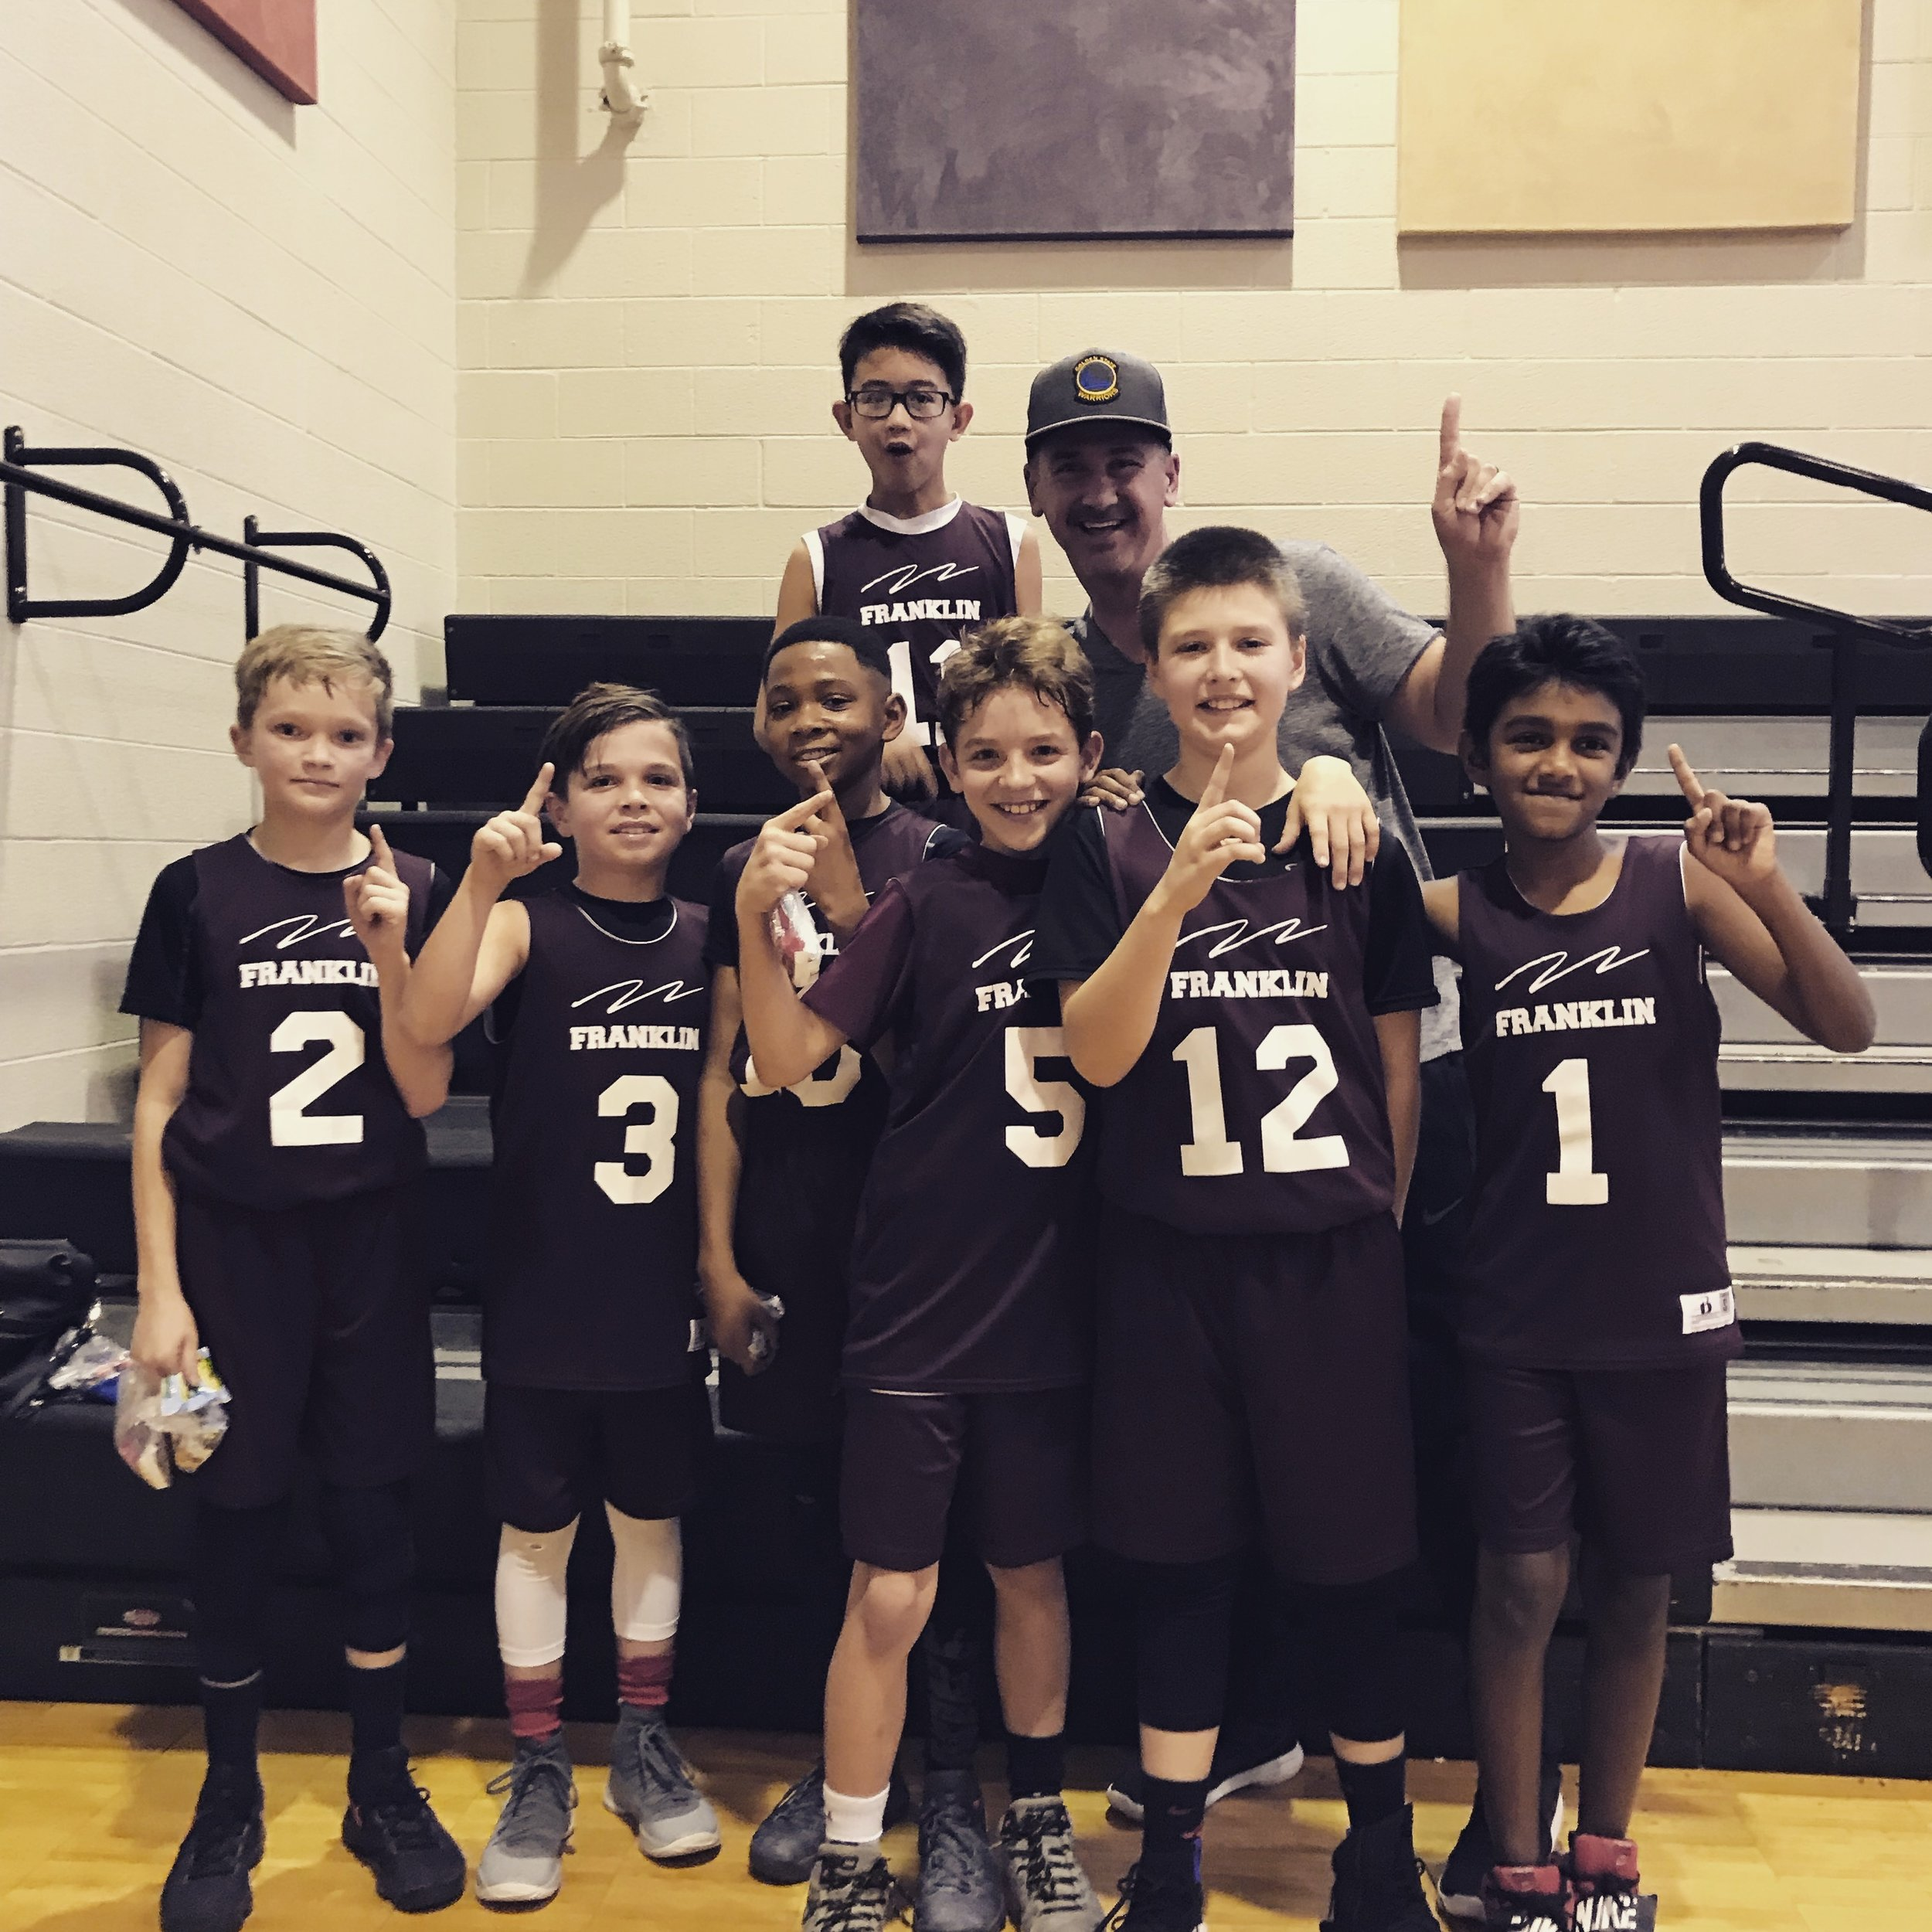 City Champs!! Even at 9 & 10 years of age these boys played with Heart, Hustle, & Joy! They began to believe their worth & value… It changes things!